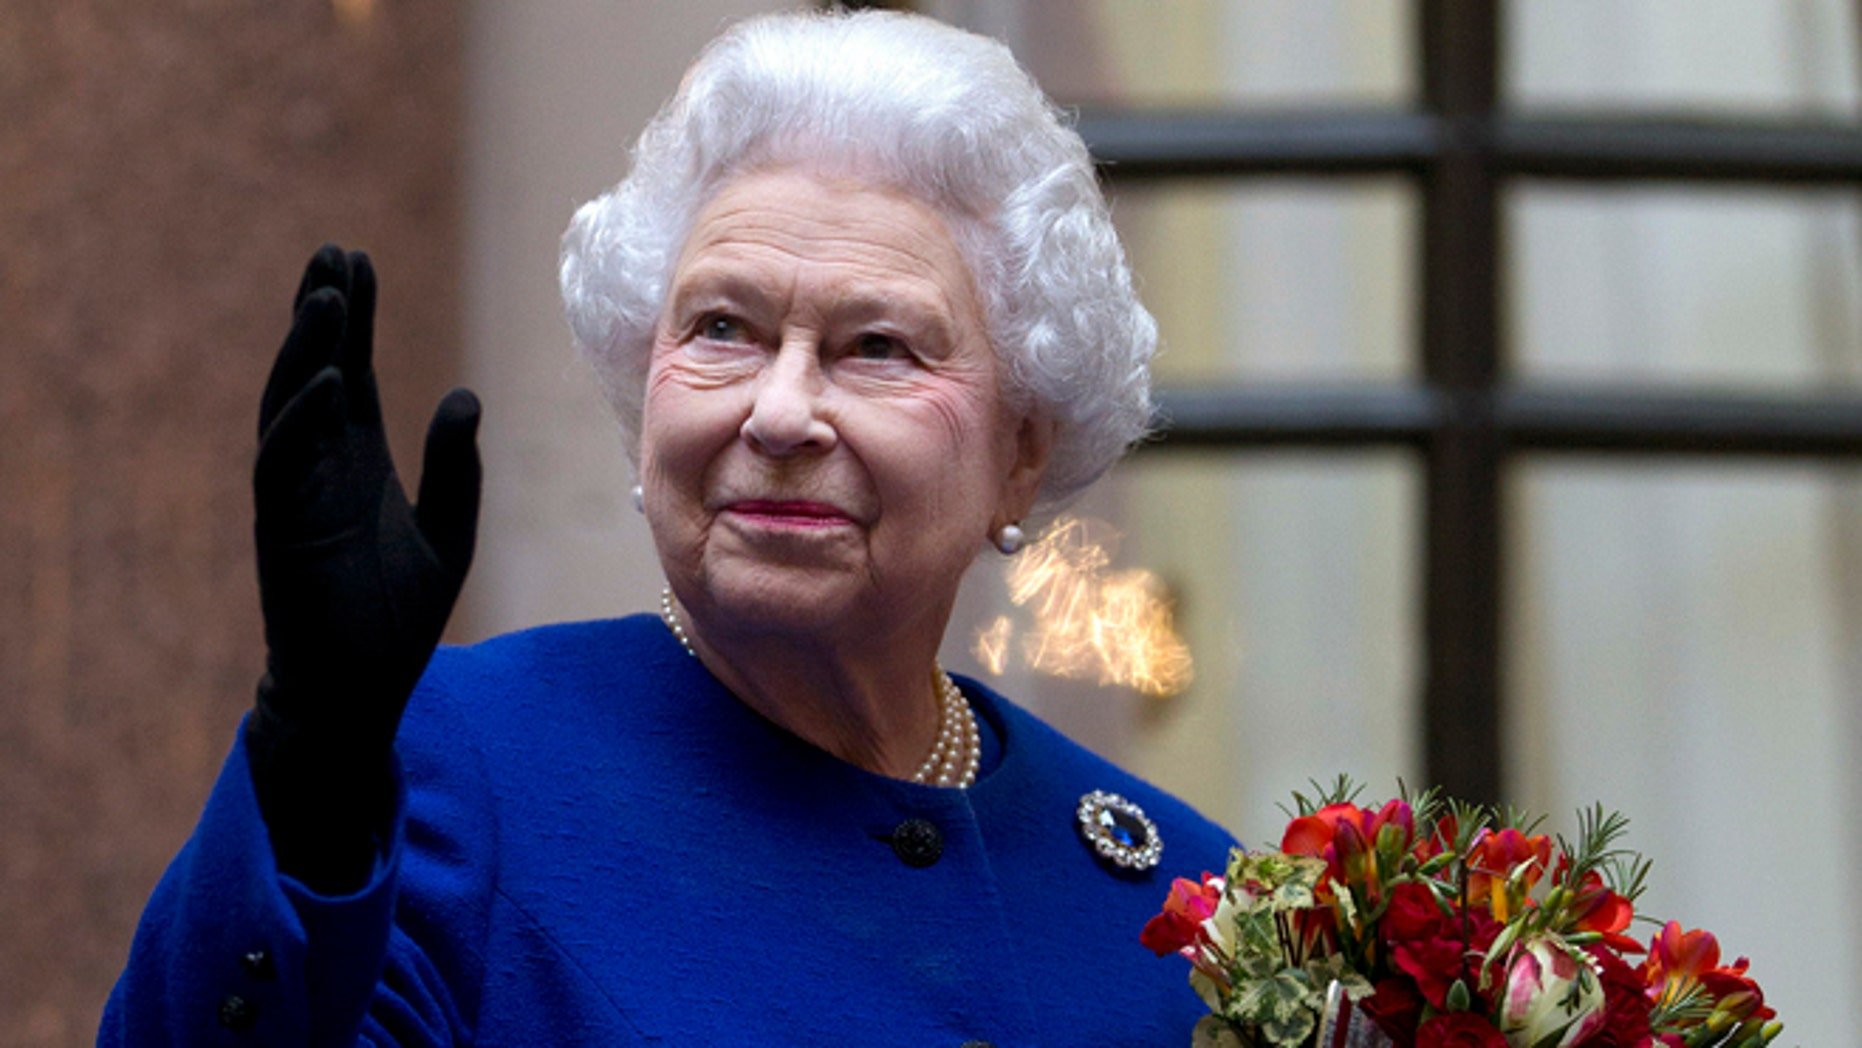 Dec. 18, 2012: In this file photo, Britain's Queen Elizabeth II looks up and waves to members of staff of The Foreign and Commonwealth Office as she ends an official visit which is part of her Jubilee celebrations in London. She has no formal political role, but Queen Elizabeth II has been named Britain's most powerful woman by a BBC radio program.